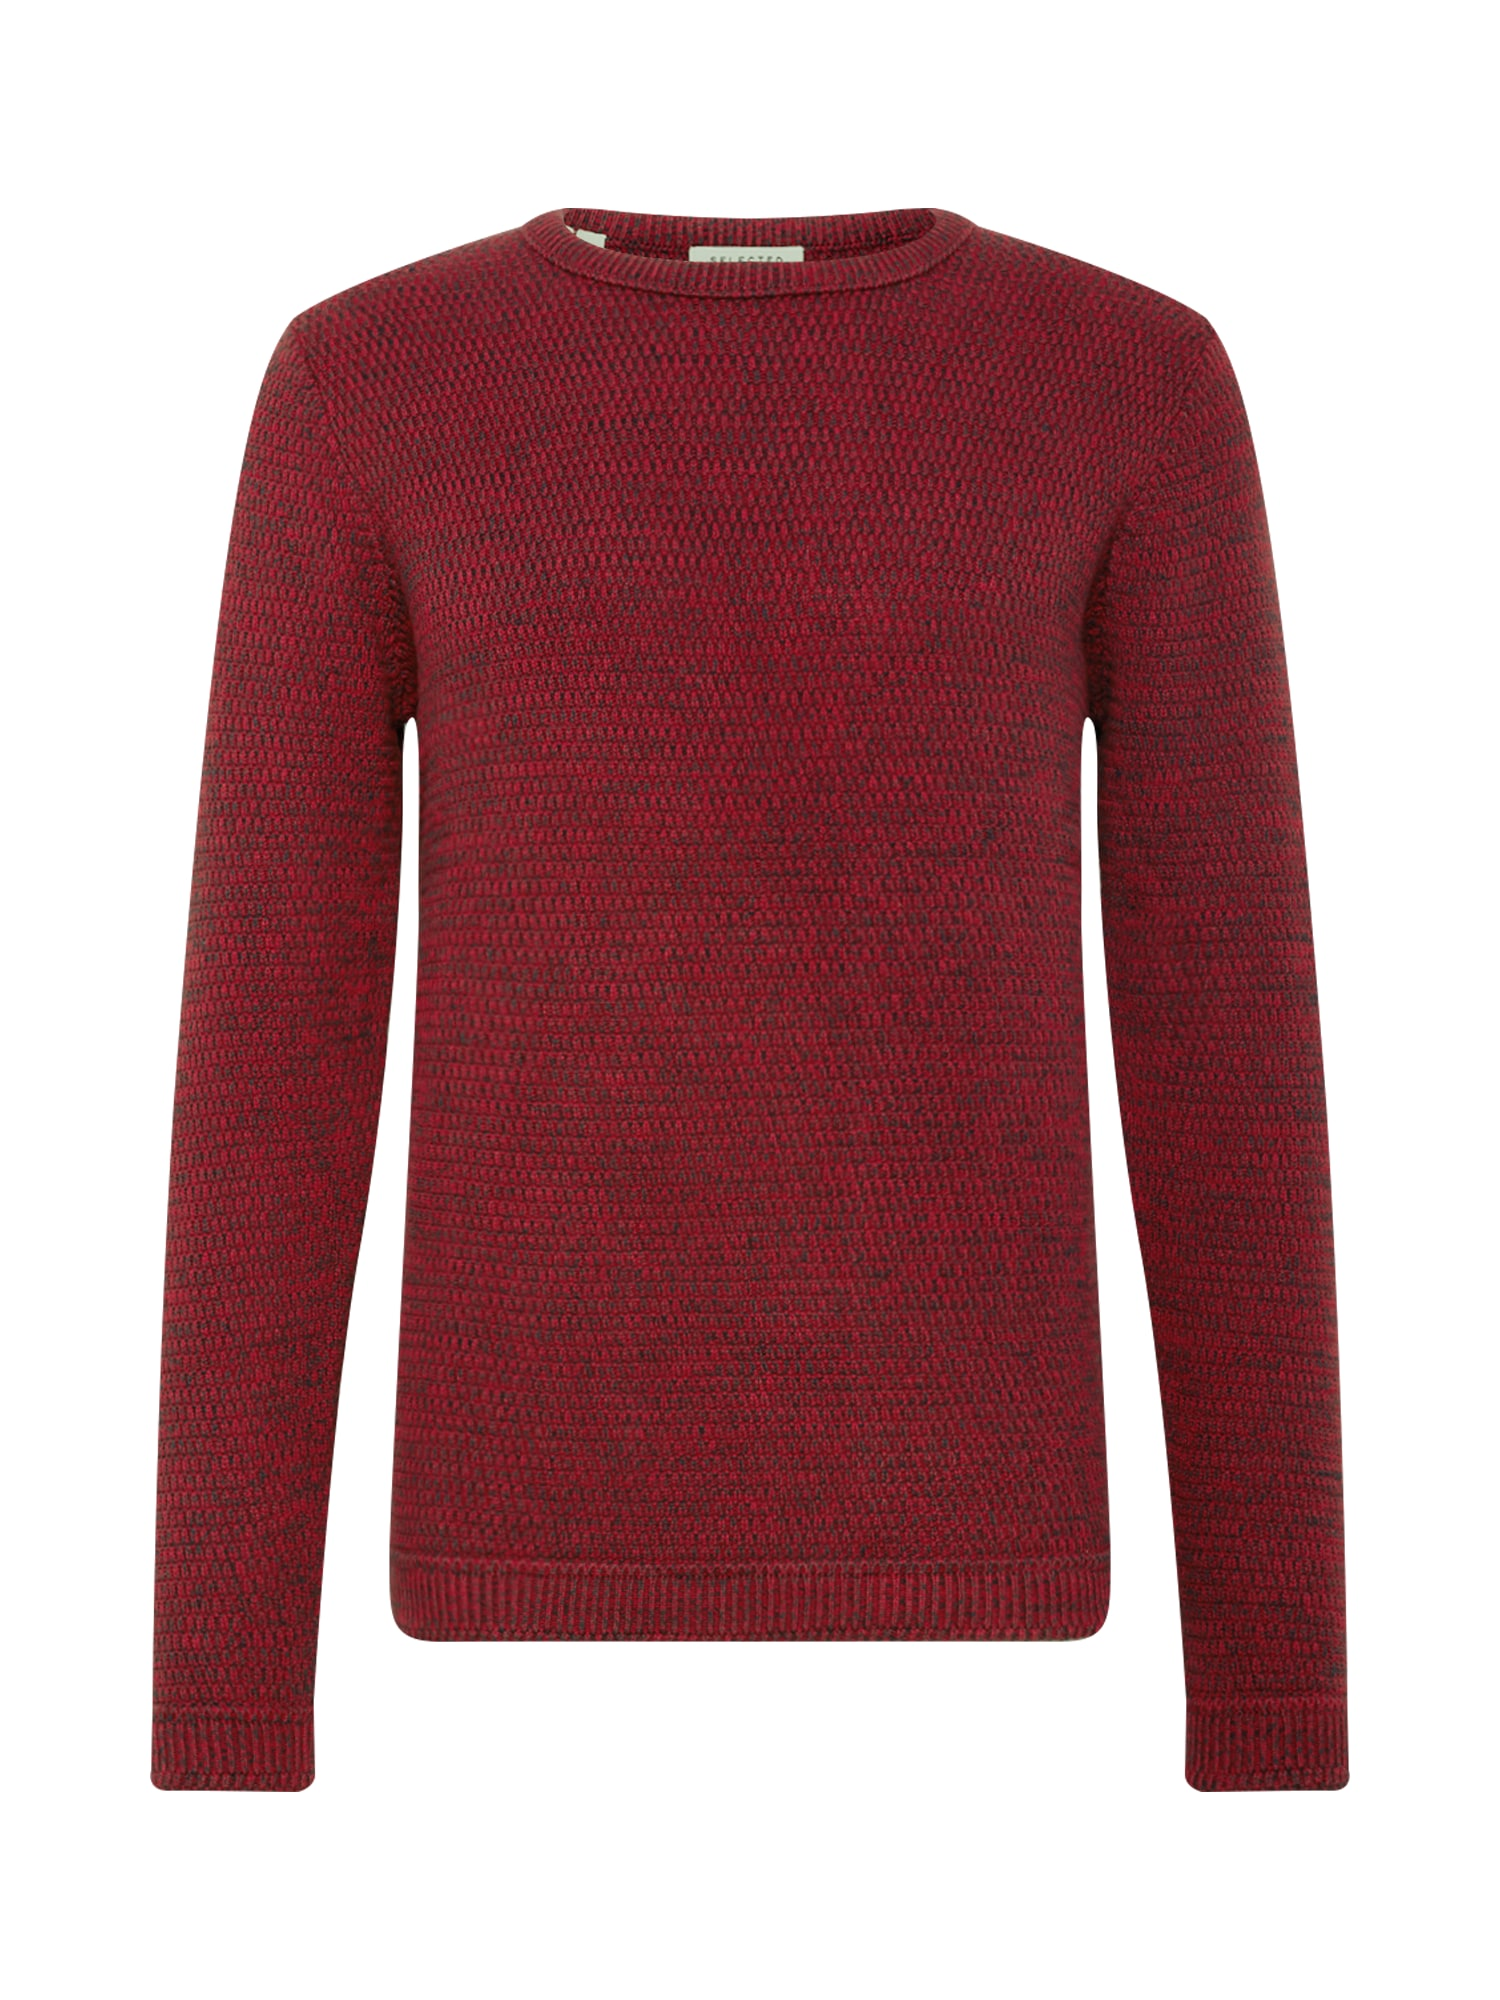 SELECTED HOMME Svetr SLHVICTOR CREW NECK W NOOS červená Selected Homme